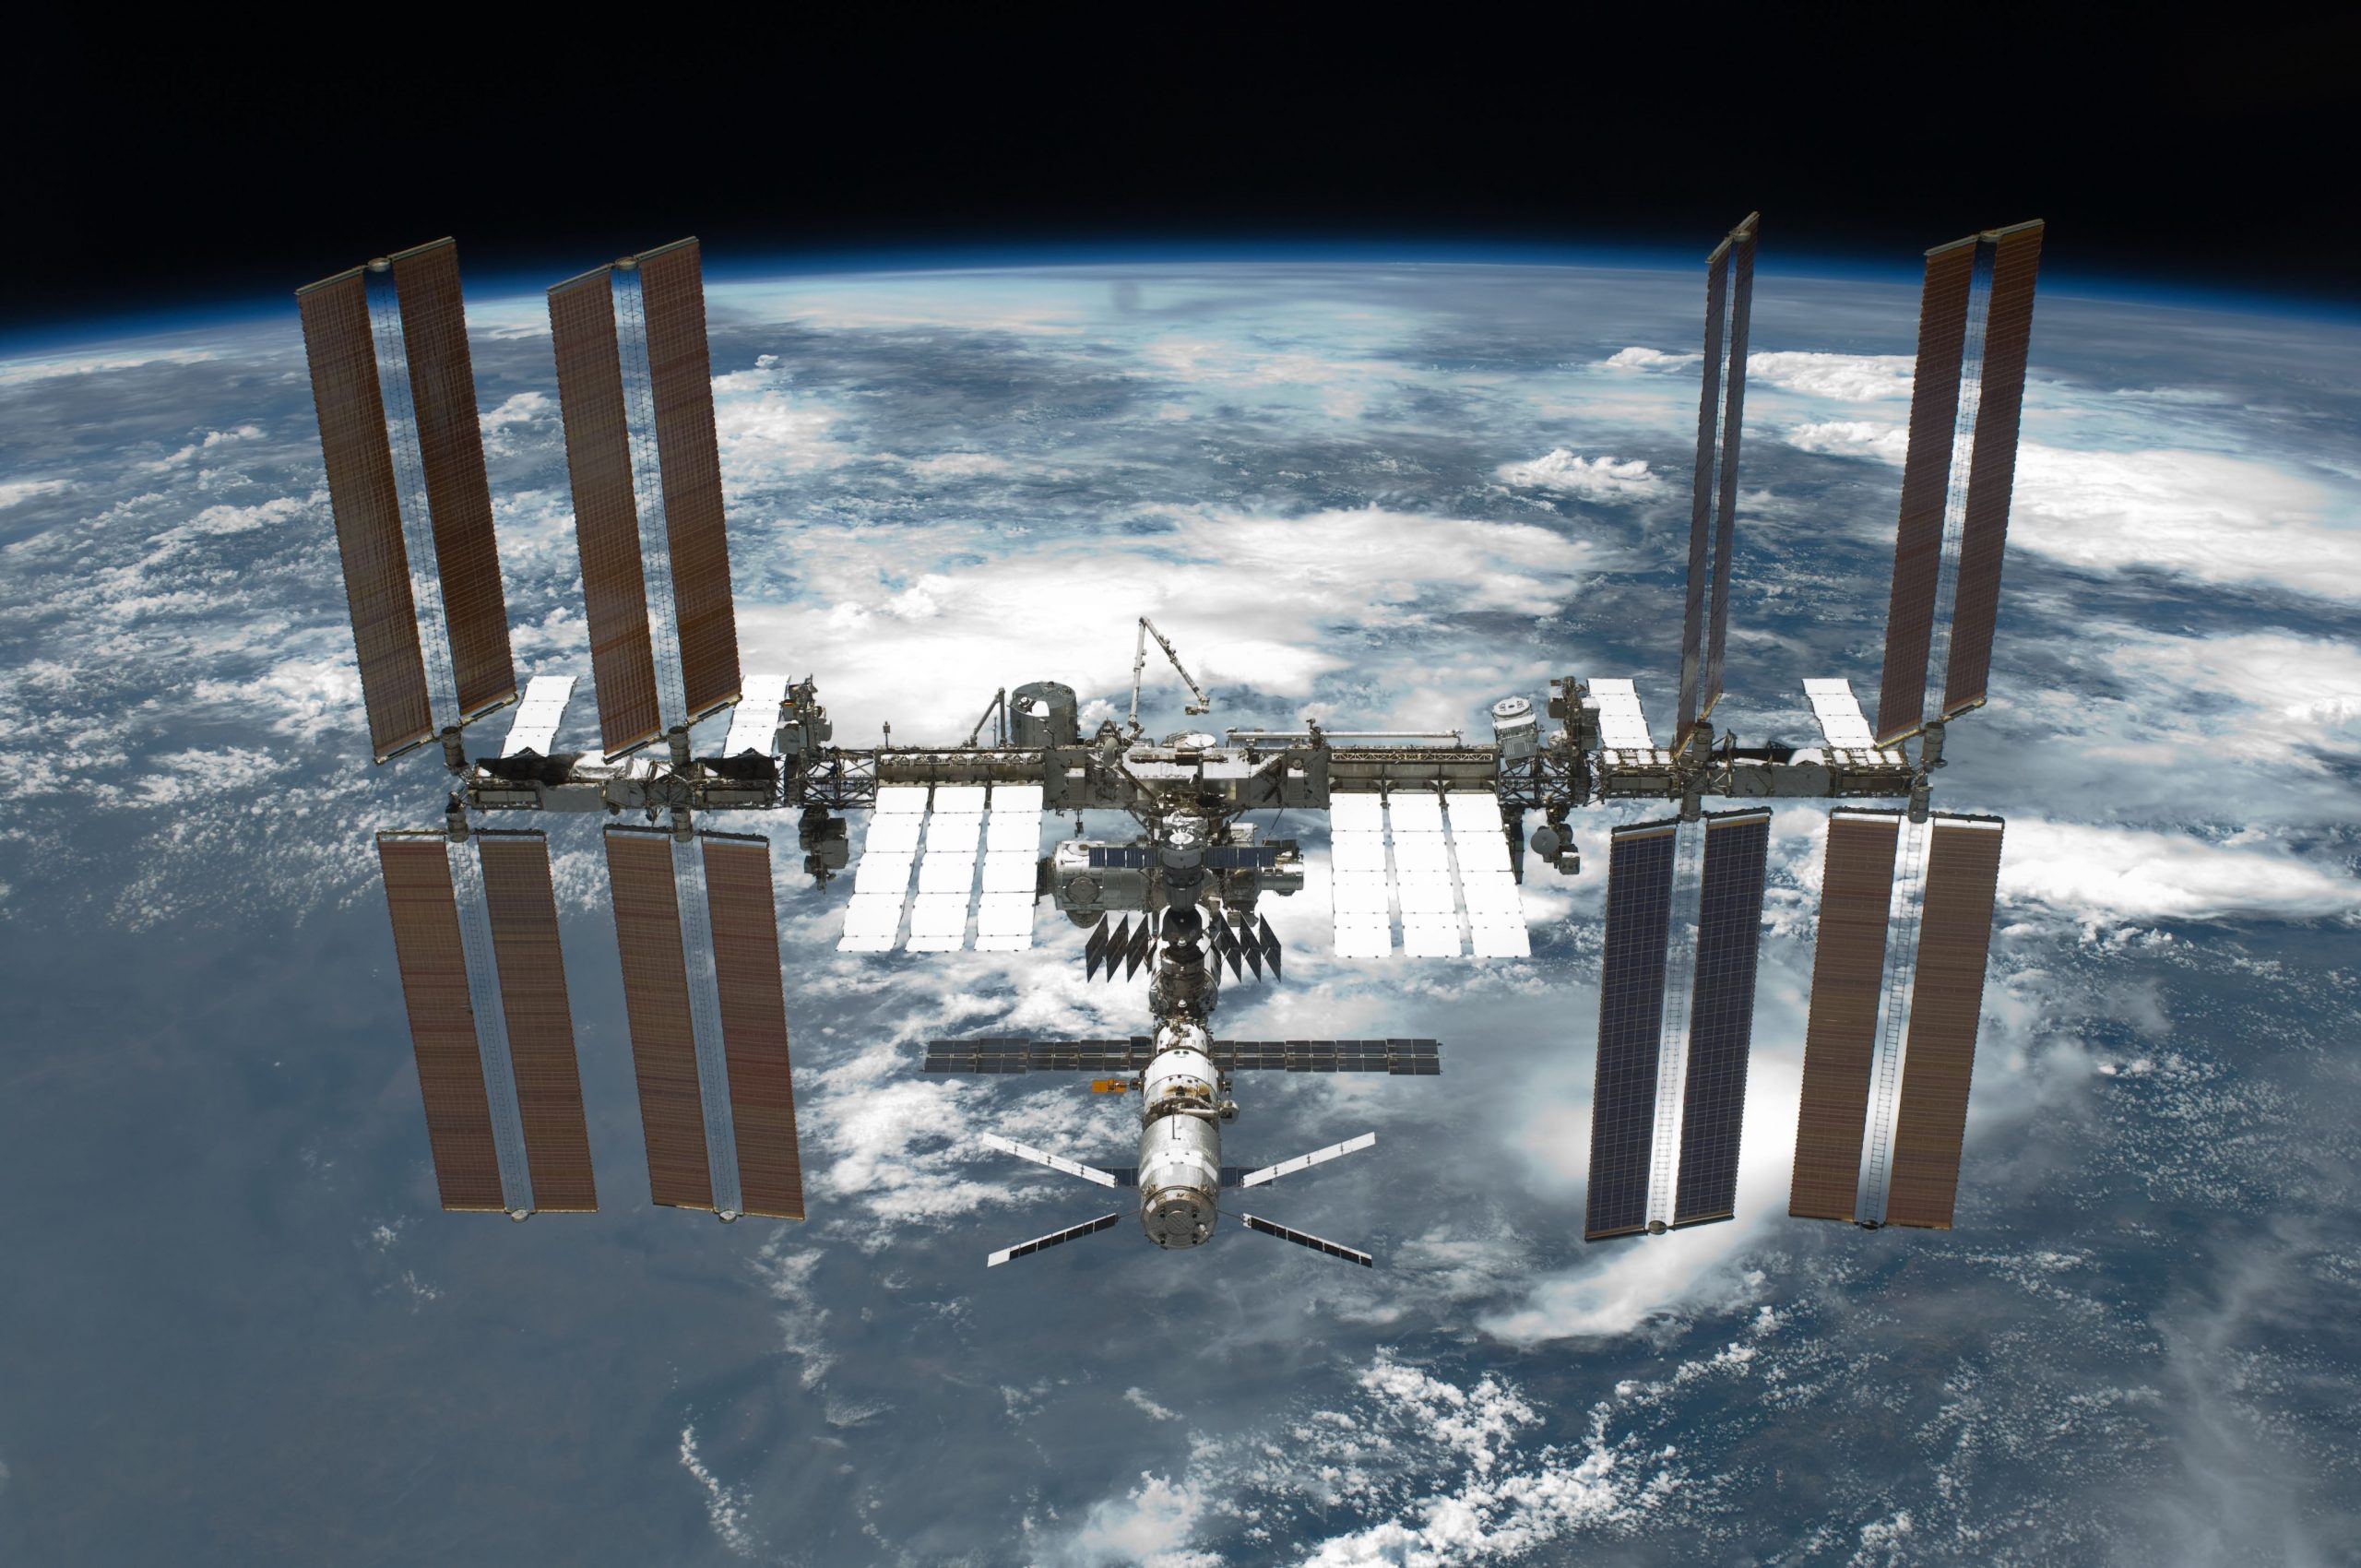 4096px-STS-134_International_Space_Station_after_undocking